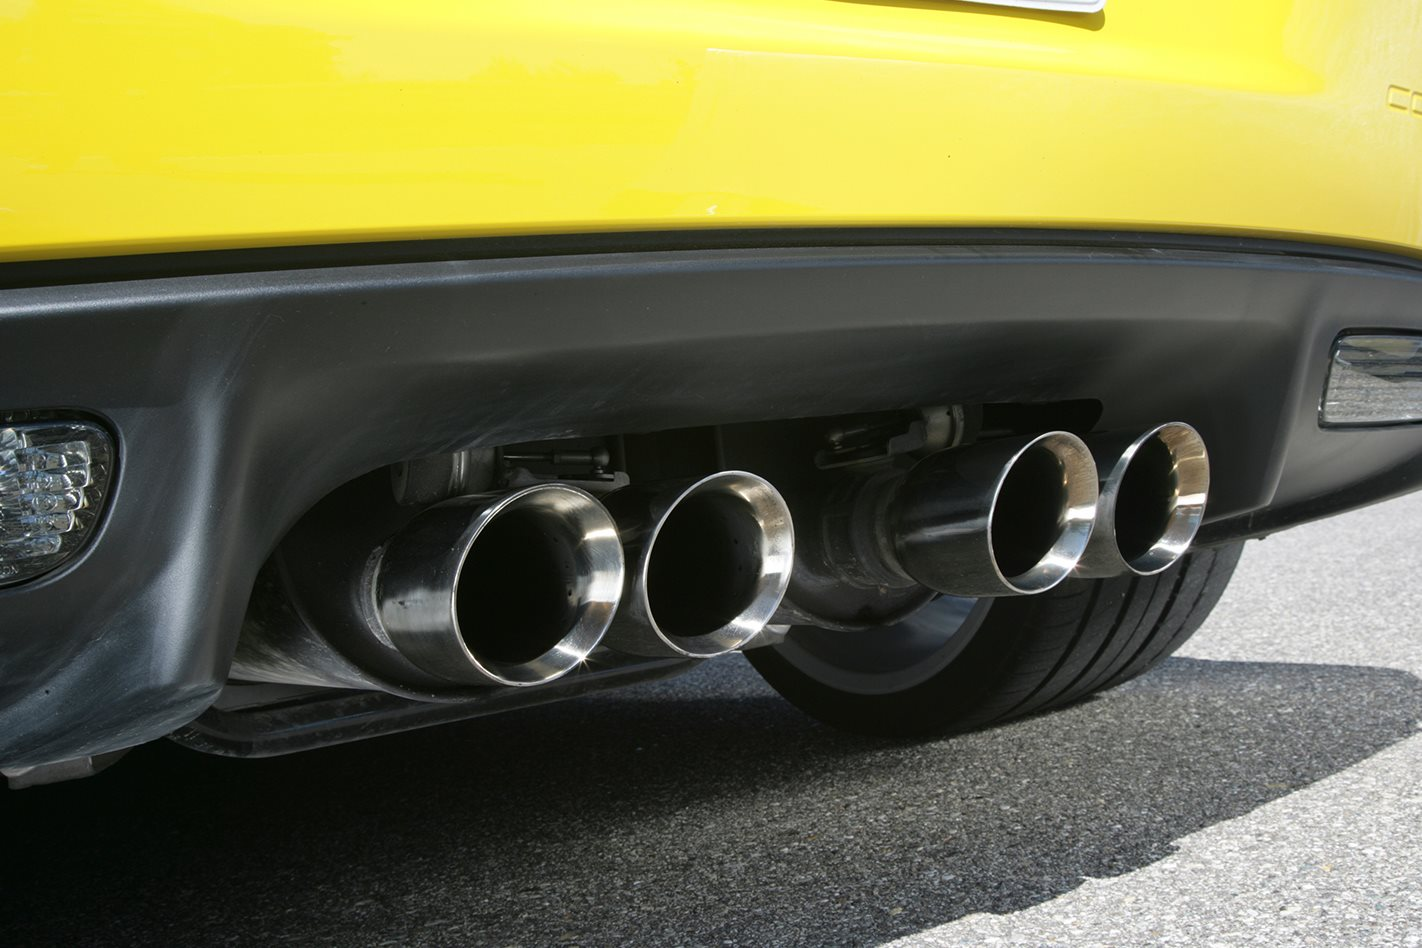 2009-Chevrolet-Corvette-ZR1-exhaust.jpg